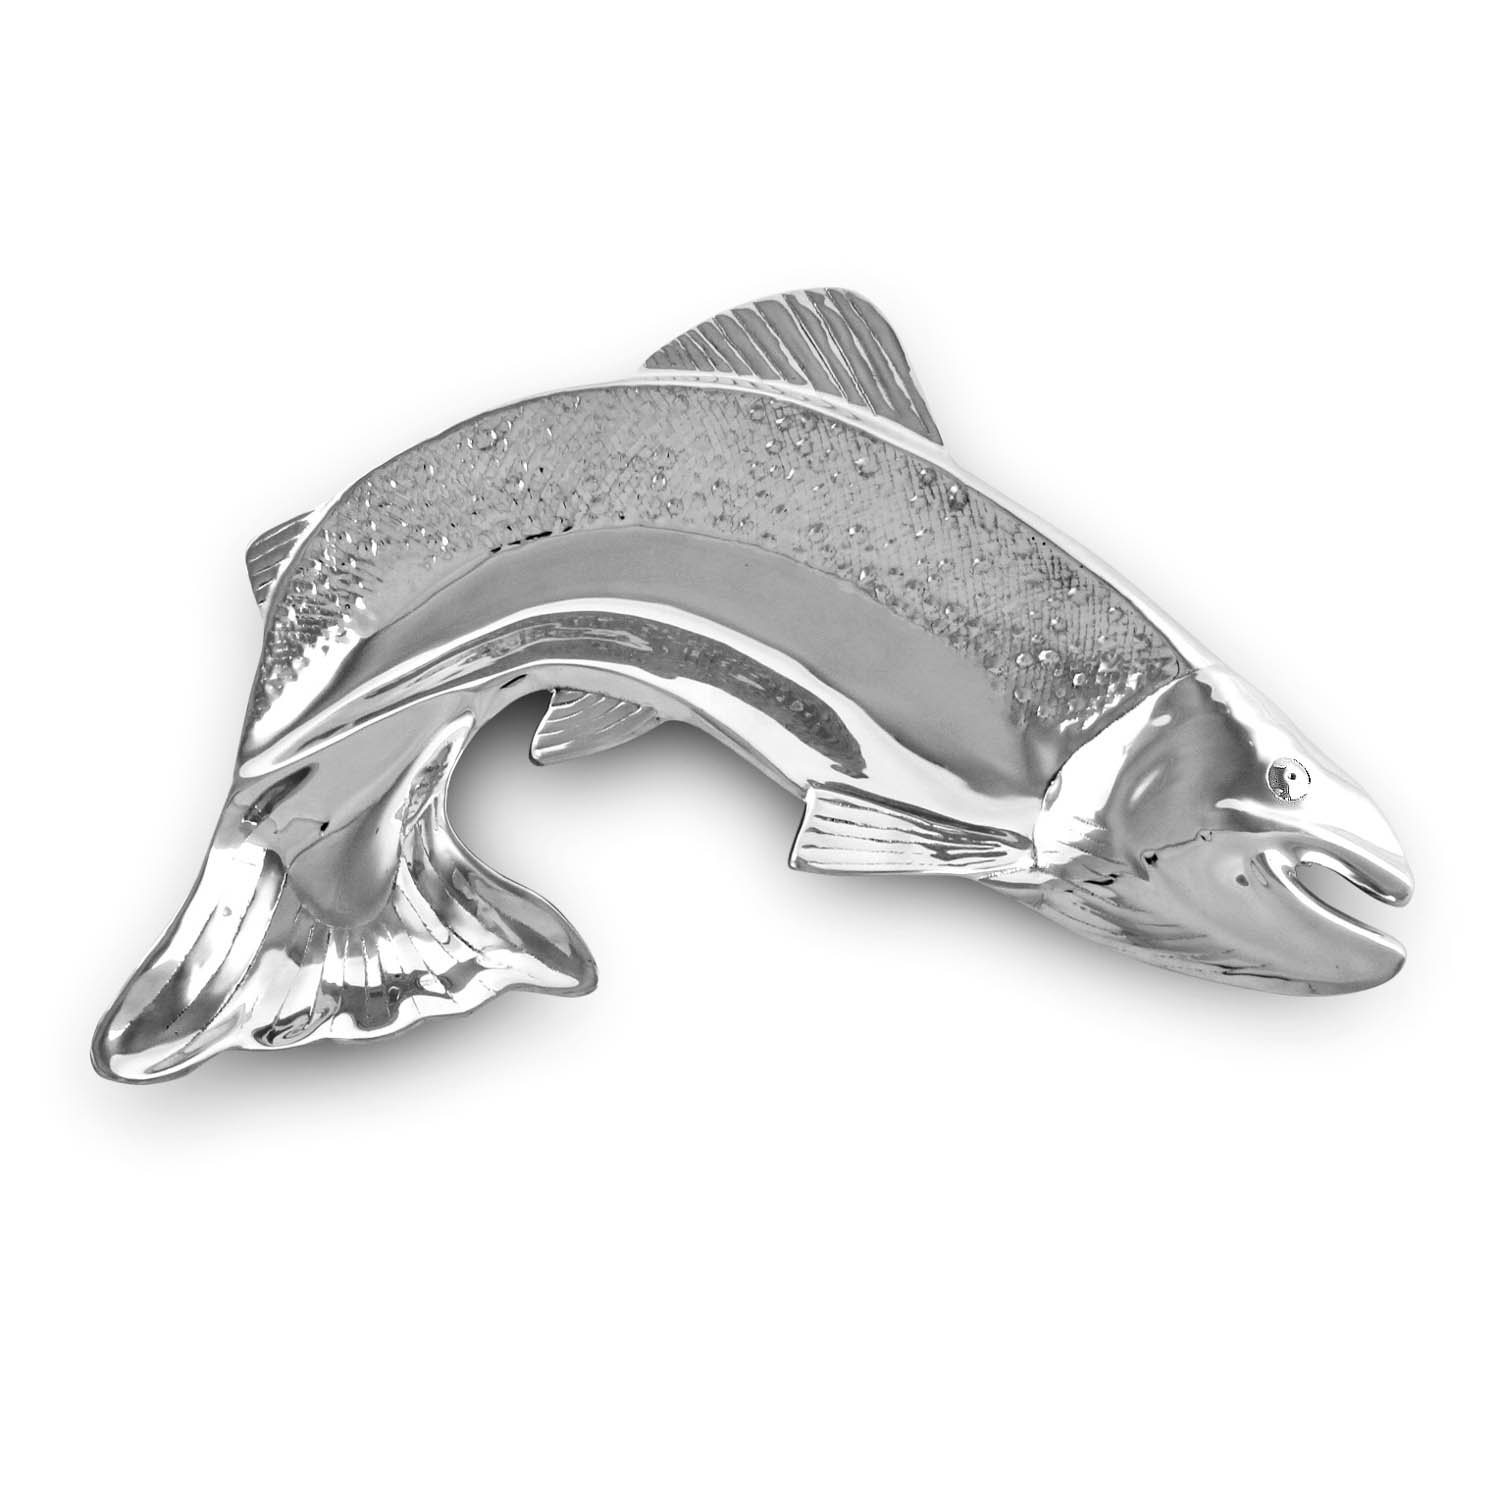 Beatriz Ball 6577 Ocean Salmon Platter With Dip Silver